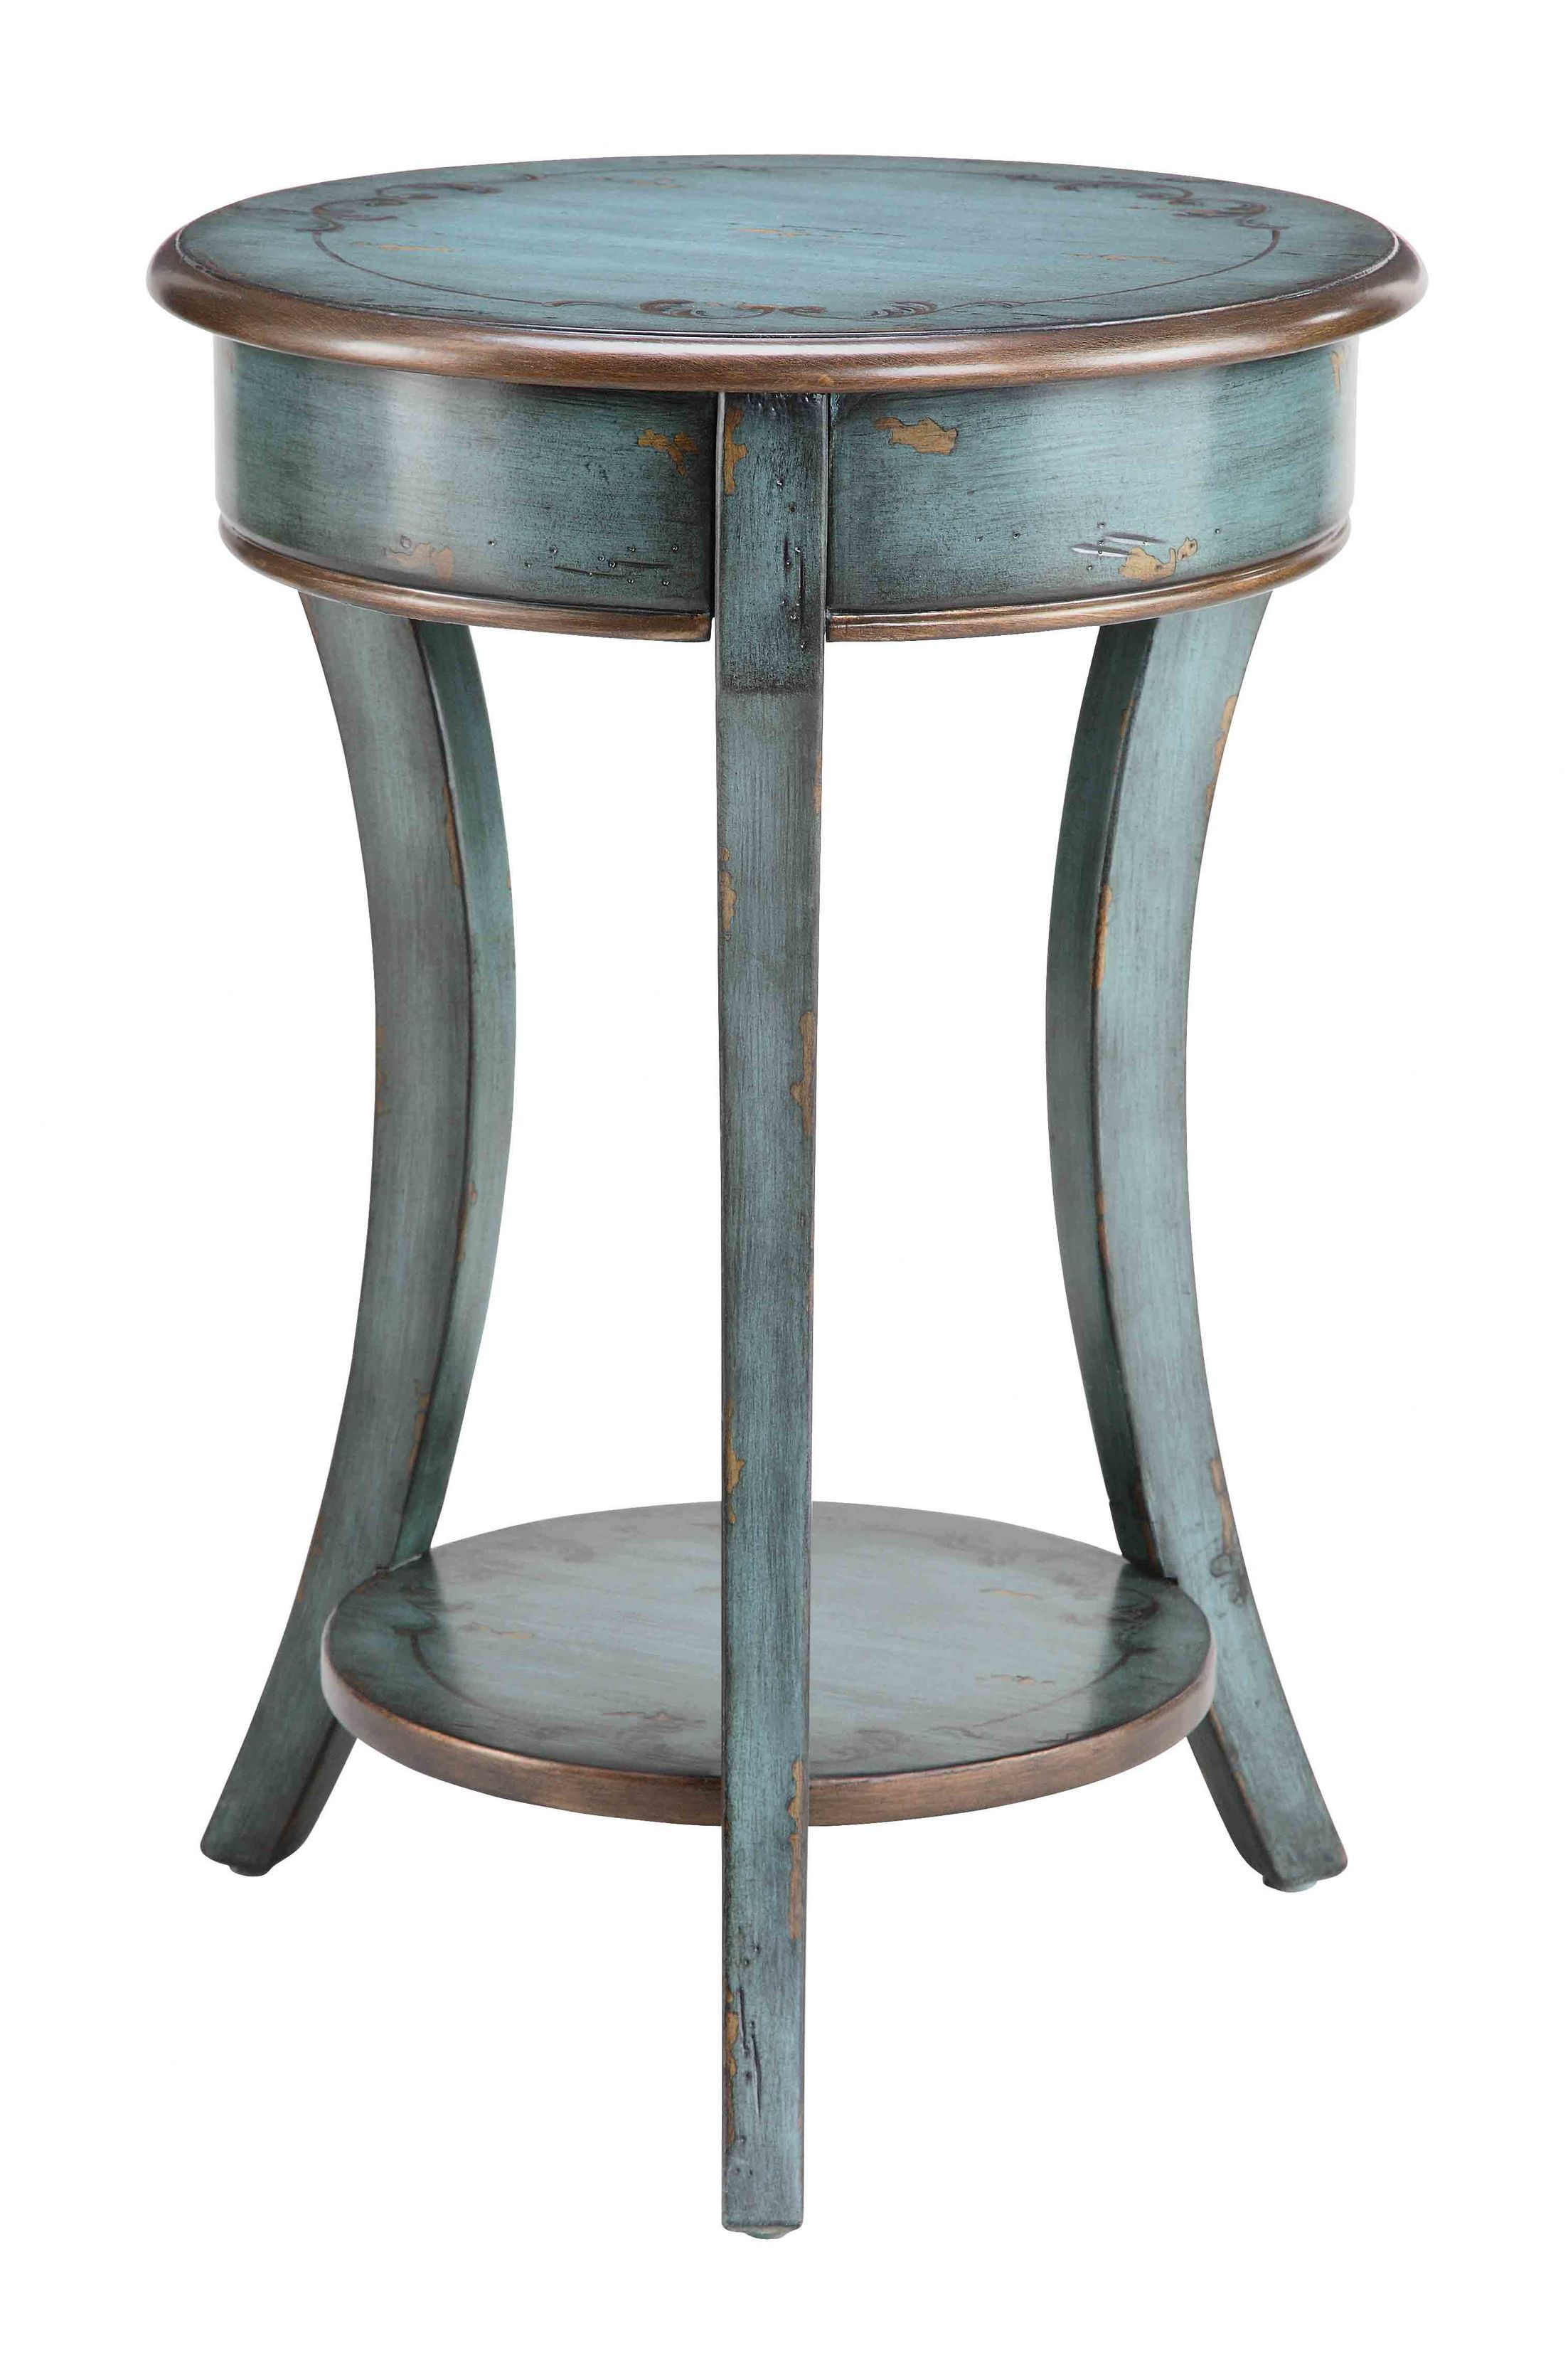 painted treasures curved legs round accent table living room small tables for bedroom ikea dining drop leaf end furniture suppliers dale tiffany tulip lamp lawn target metal